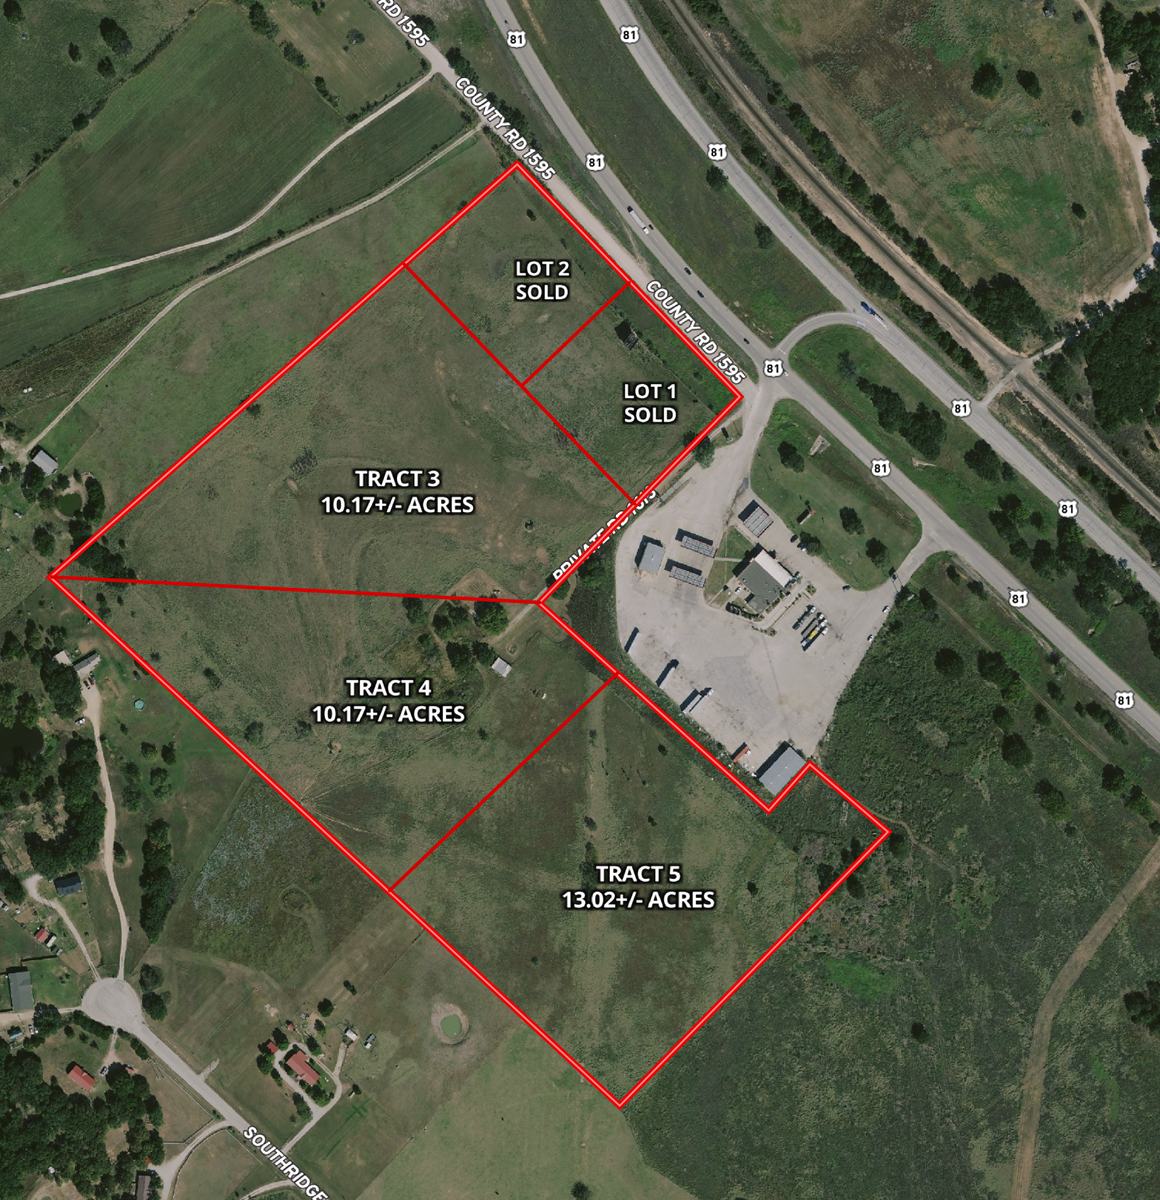 LAND FOR SALE ALVORD WISE COUNTY TEXAS HOMESITES PROPERTY